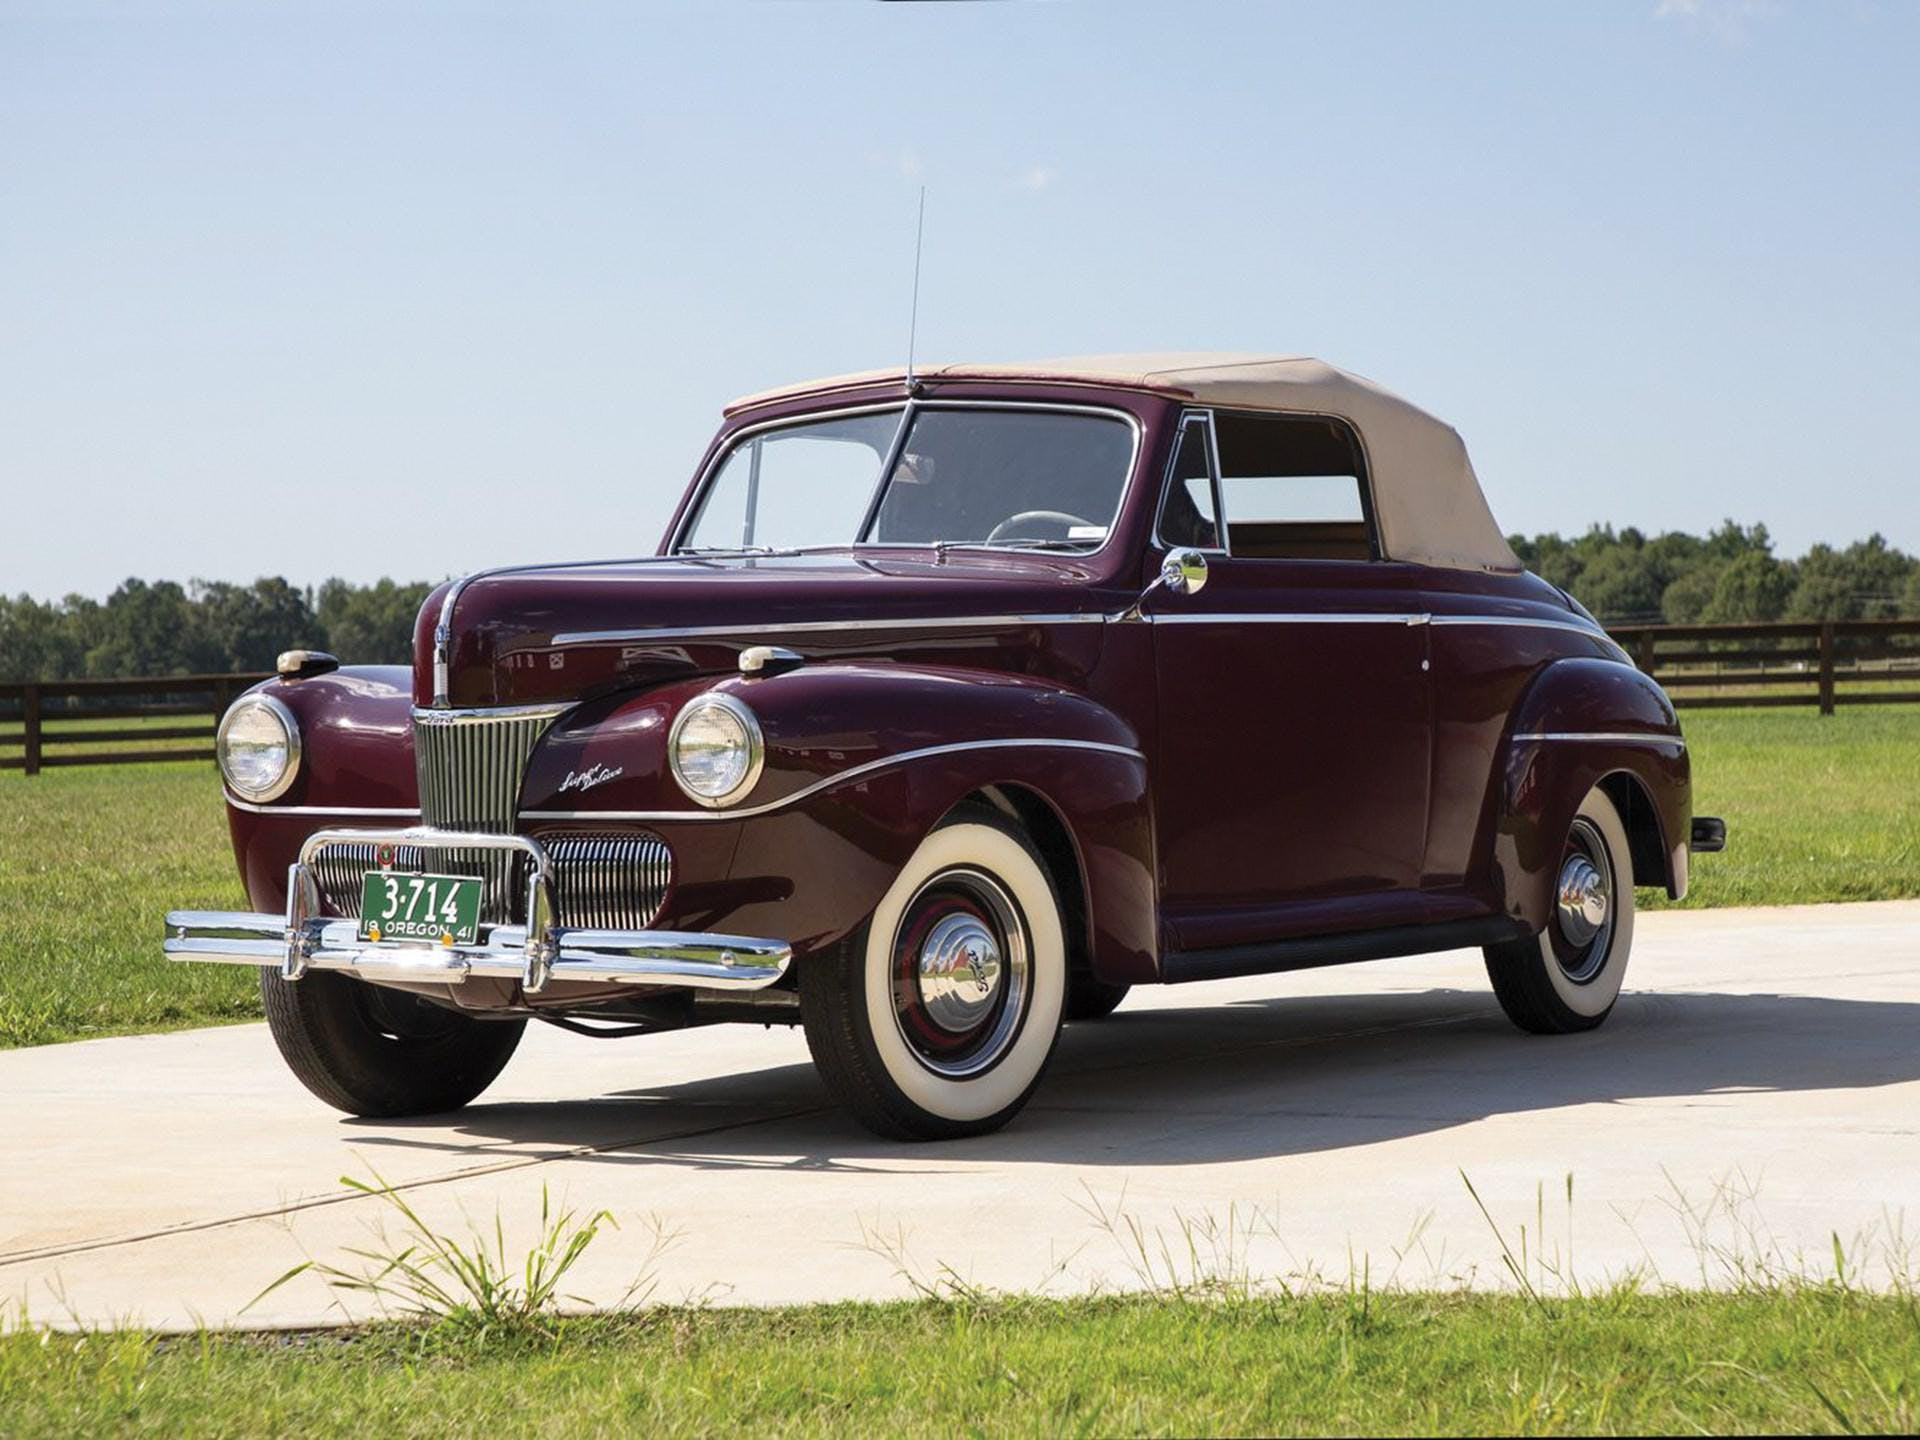 1941 Ford V-8 Super Deluxe Convertible Coupe